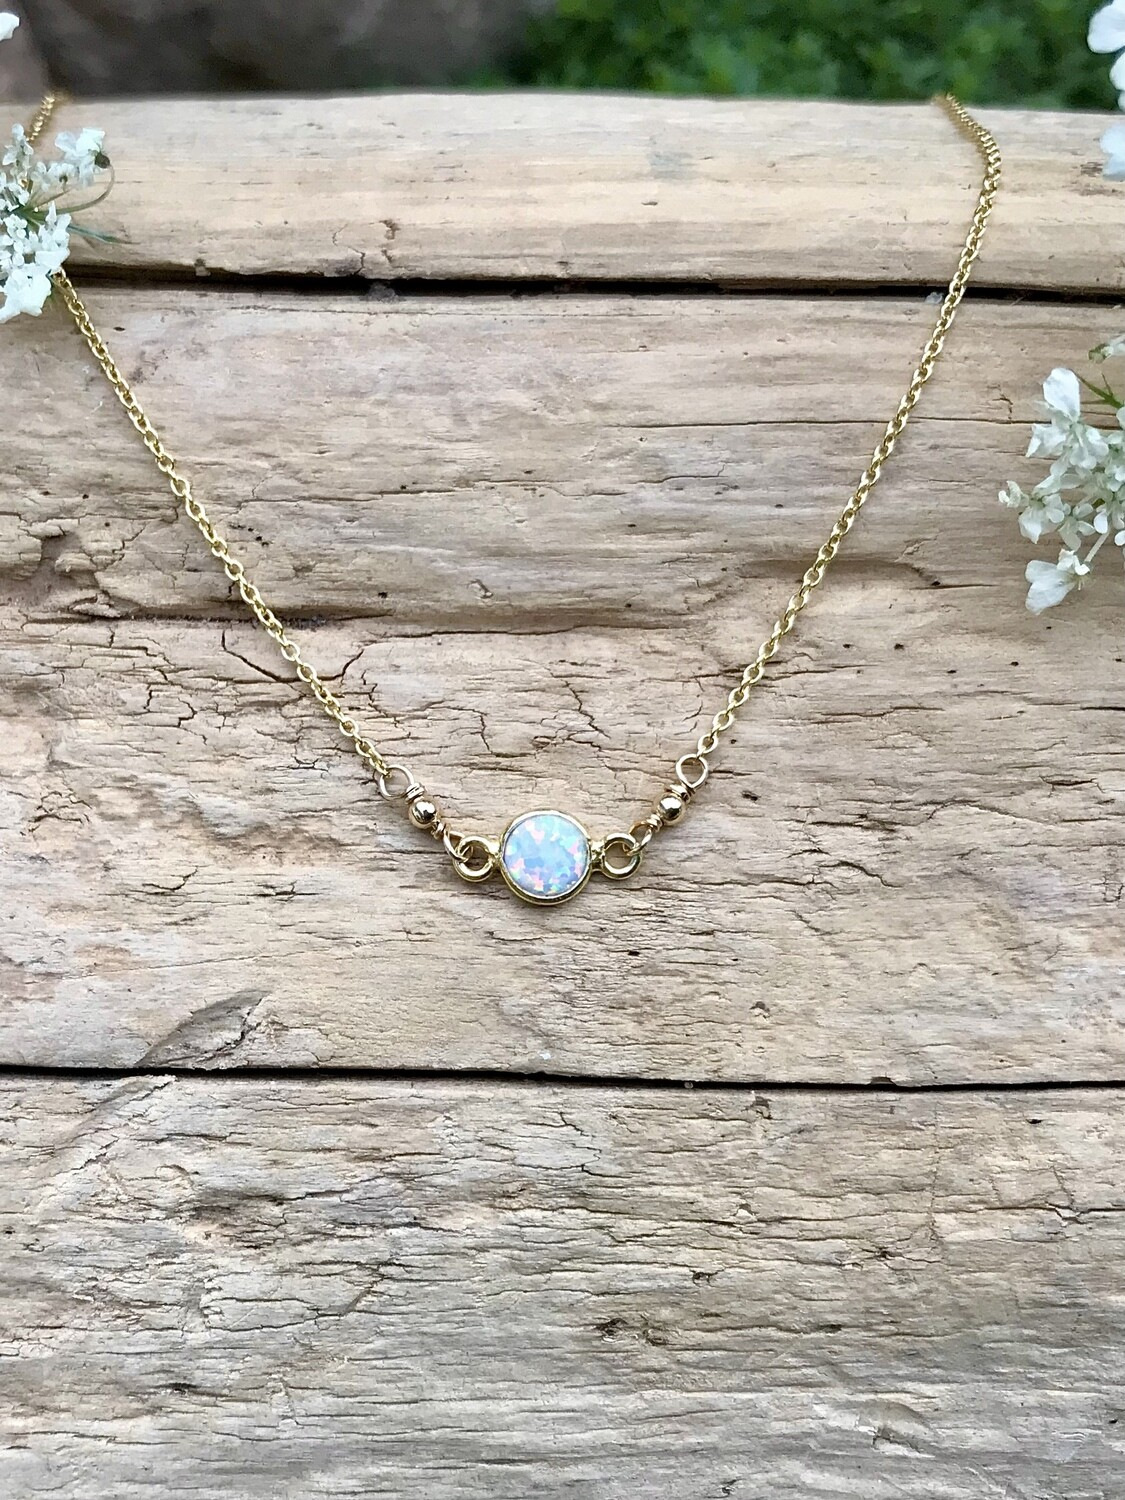 Opalescent Aphrodite Round Necklace - GDFDLKN8